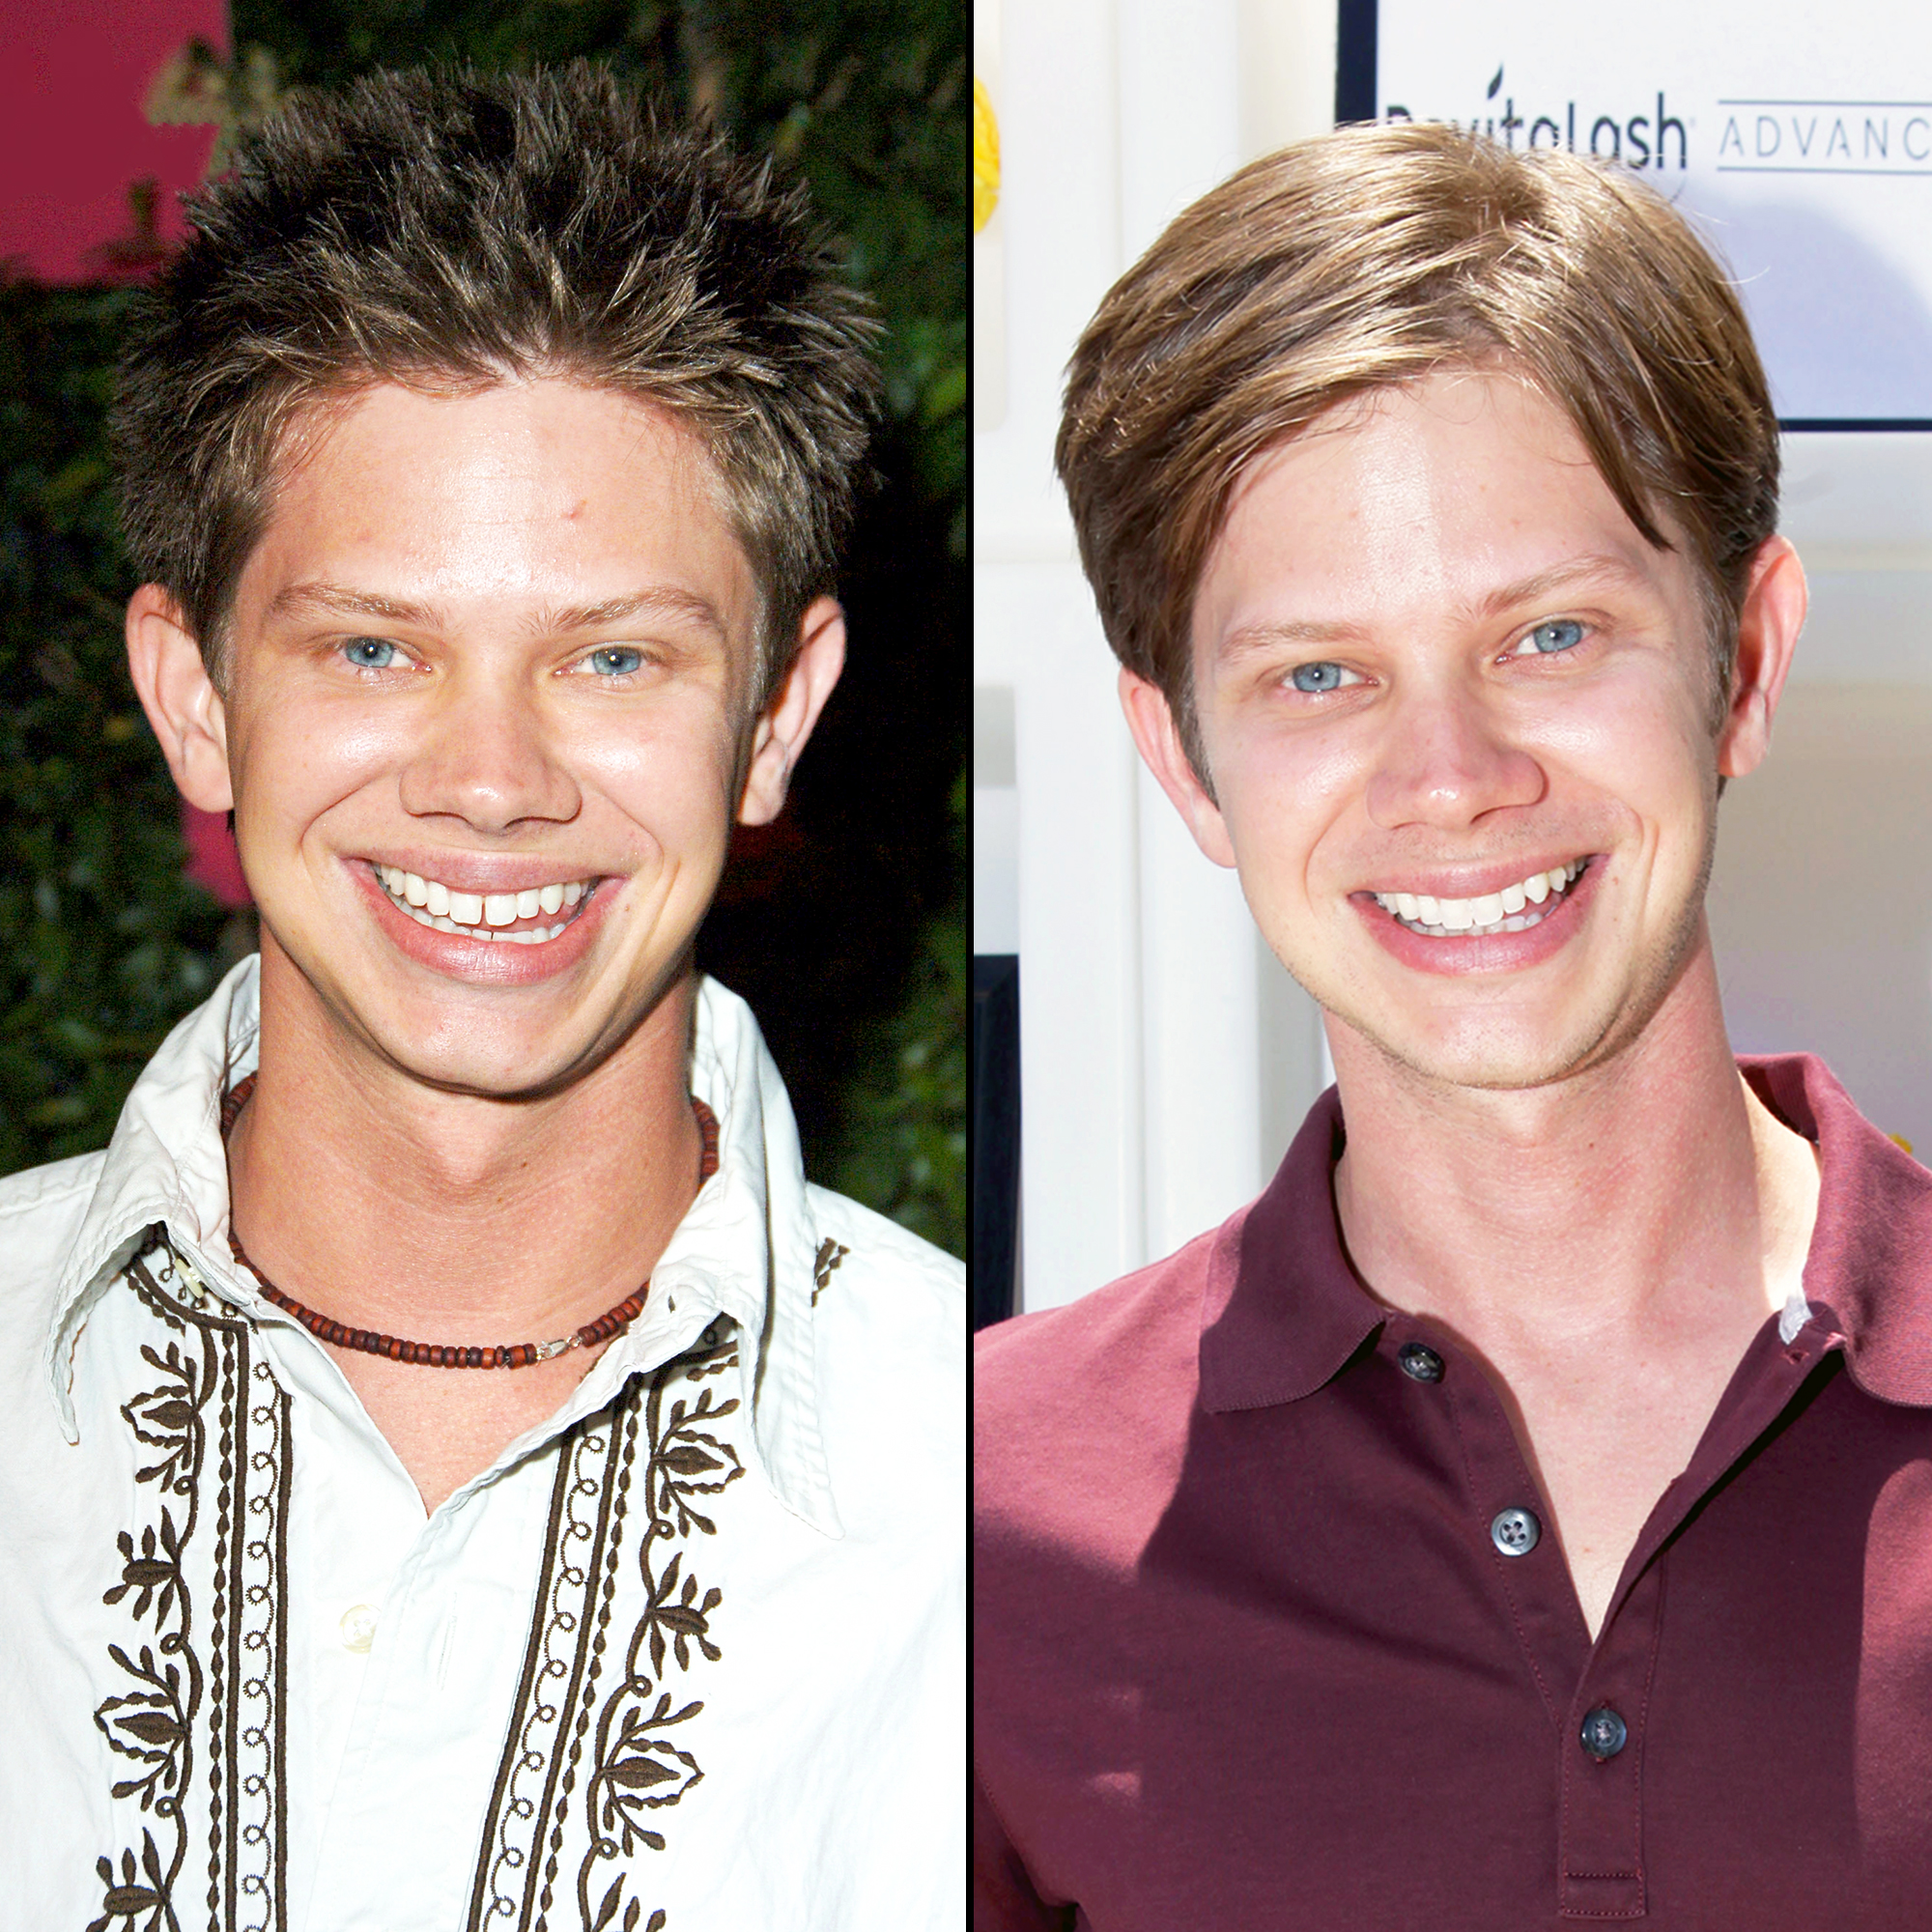 """Lee Norris One Tree Hill Cast Then and Now Gallery - Before One Tree Hill , Norris was best known as Stuart Minkus on Boy Meets World , a role he played from 1993 to 1994. However, his breakout role as an adult was One Tree Hill, taking on the role of Marvin """"Mouth"""" McFadden, the smart, sideline reporter, obsessed with Ravens basketball."""